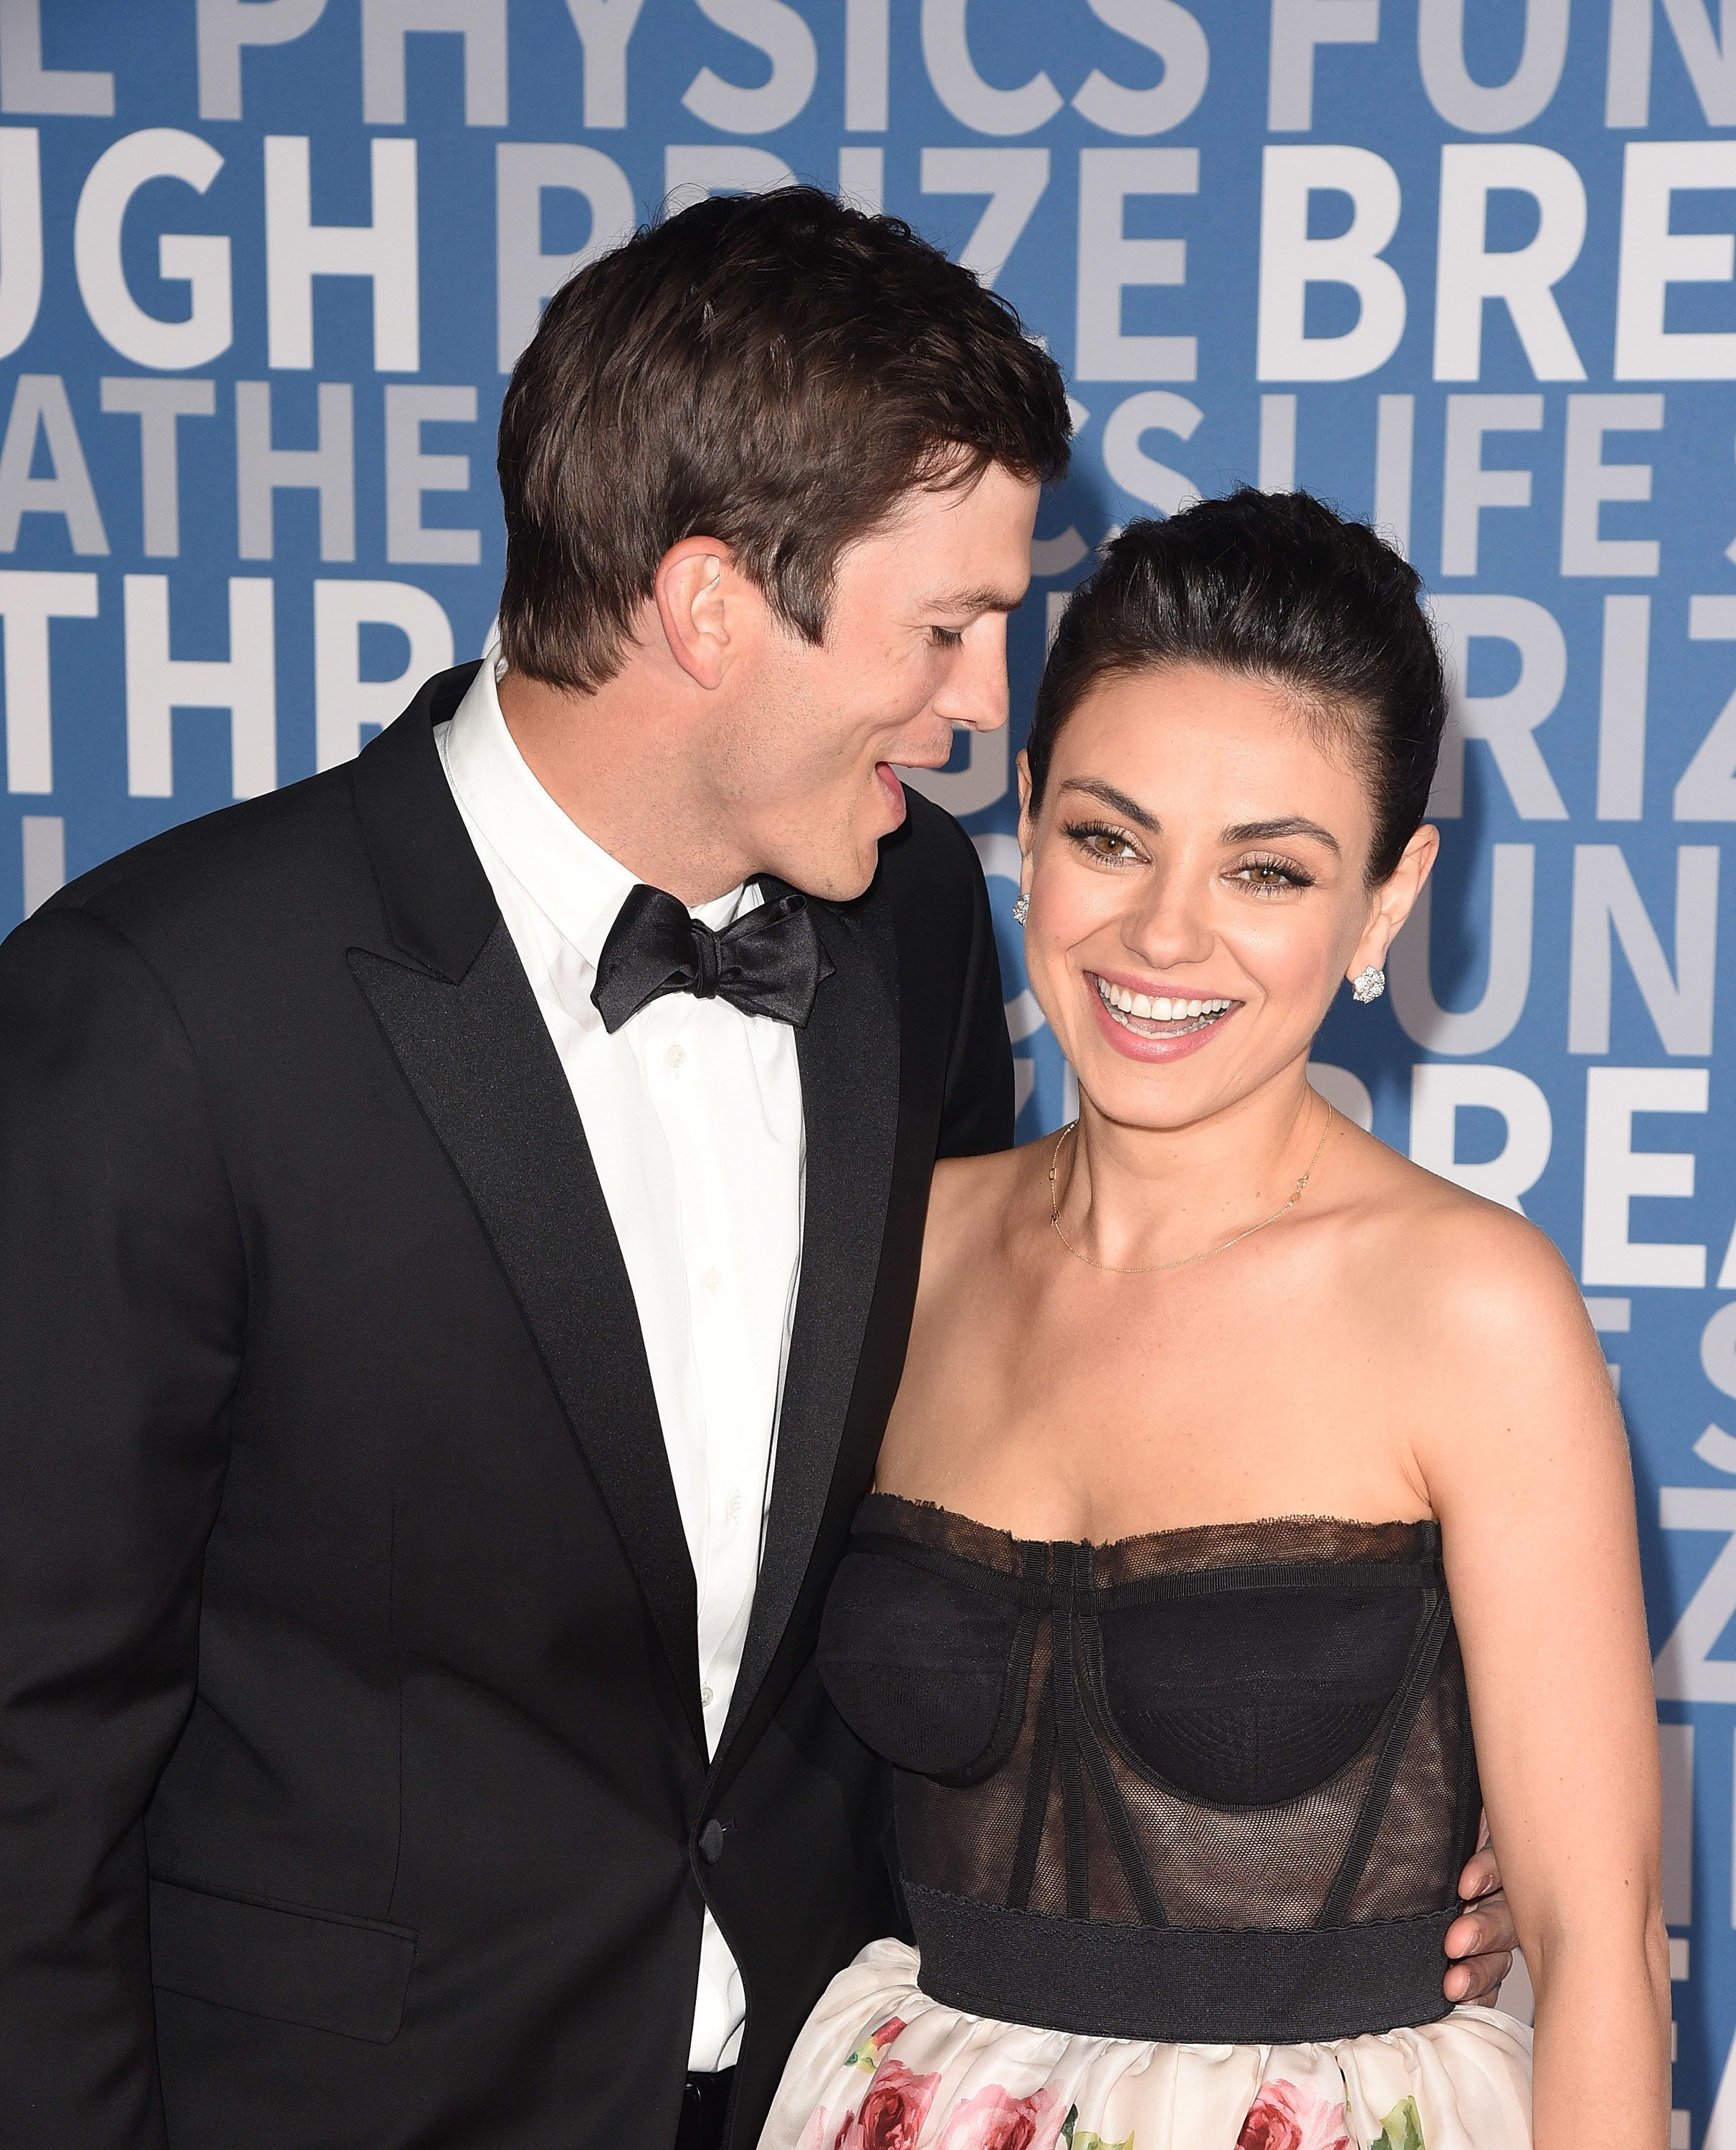 Mila Kunis Explains Ashton Kutcher's Valentine's Day Fail on 'Ellen' - Watch Here!